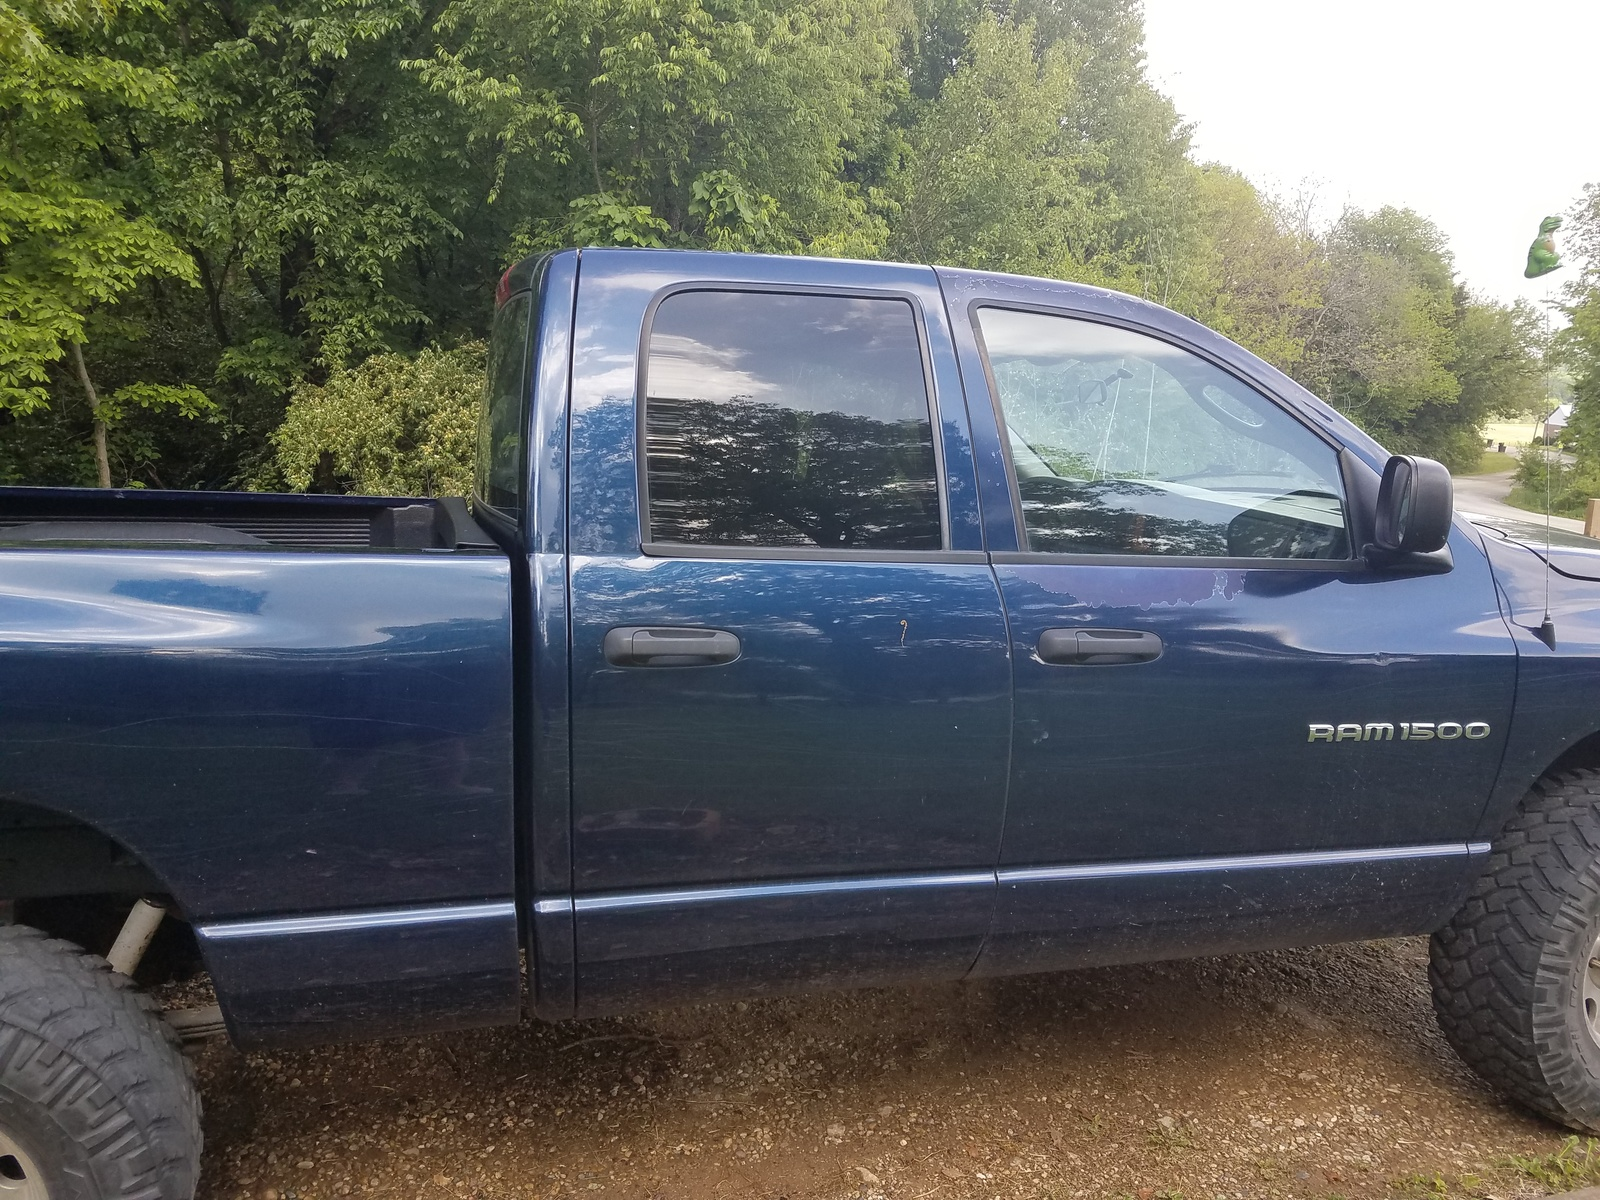 hight resolution of i recently purchased a 2006 dodge ram 1500 and an attempting to order nerf bars that imply they will only fit a quad cab i know it s a 4 7l with 4 doors